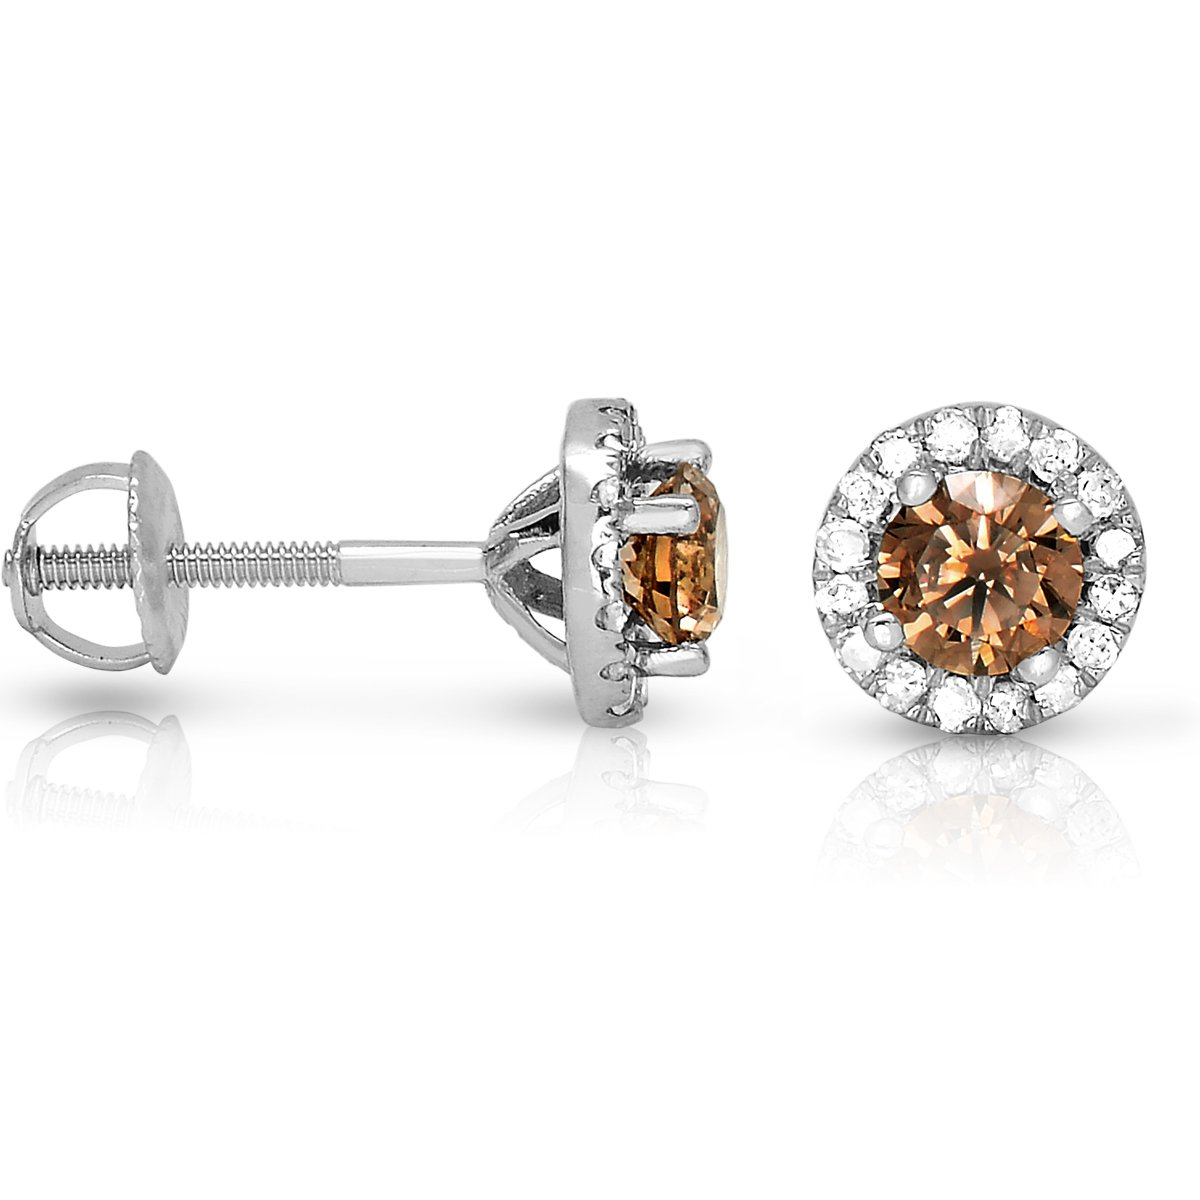 1 ct Chocolate Brown Round Diamond Halo Cluster Stud Earrings 14k White Gold (E1295-100WBR)